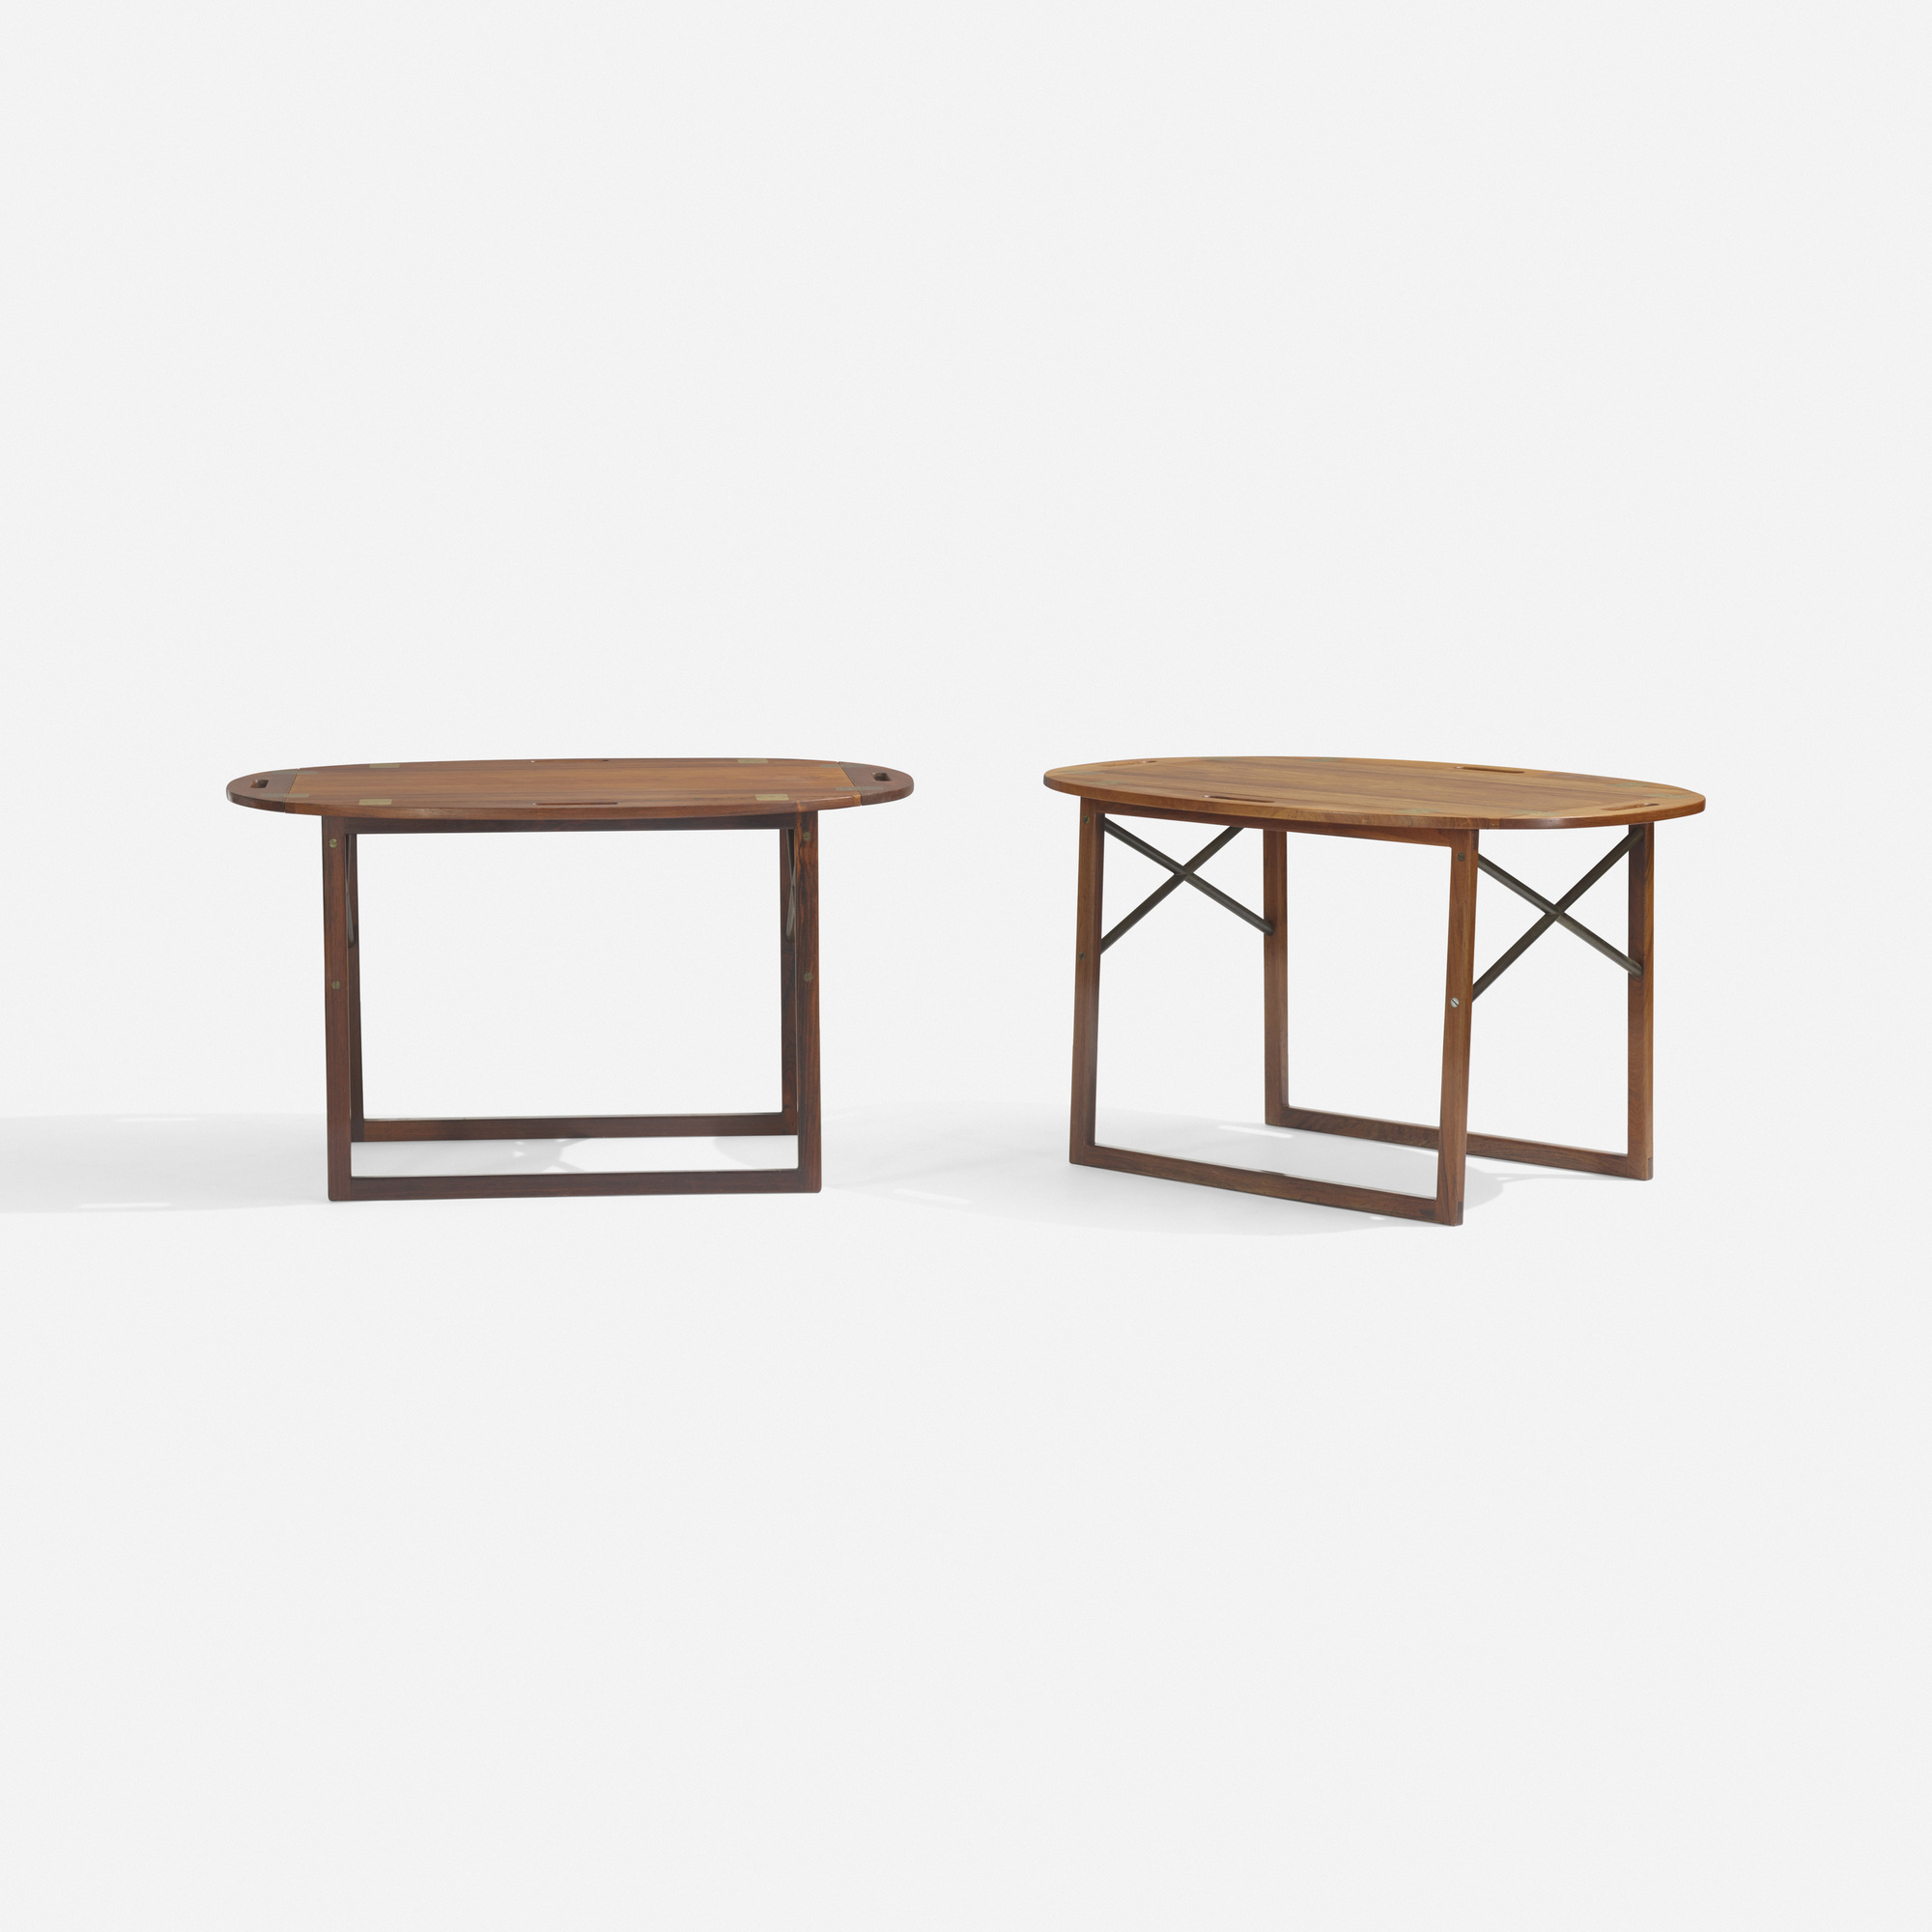 284: Svend Langkilde / tray tables, pair (2 of 2)